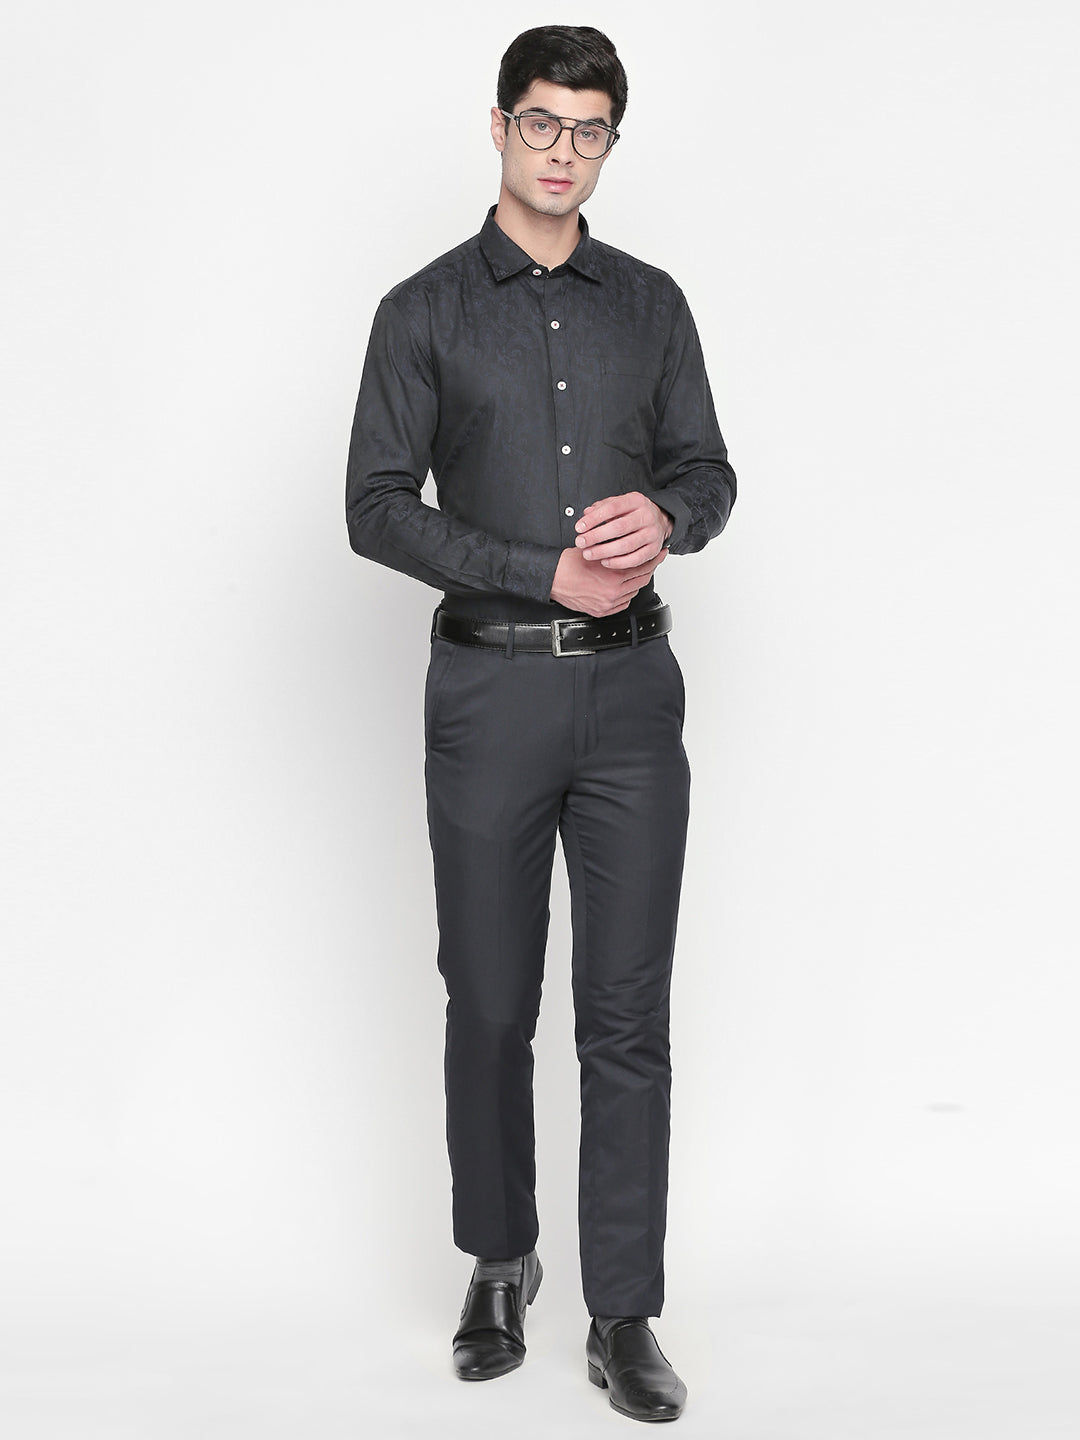 ZIDO Slim Fit Cotton Self Design Shirt for Men's JQ1441